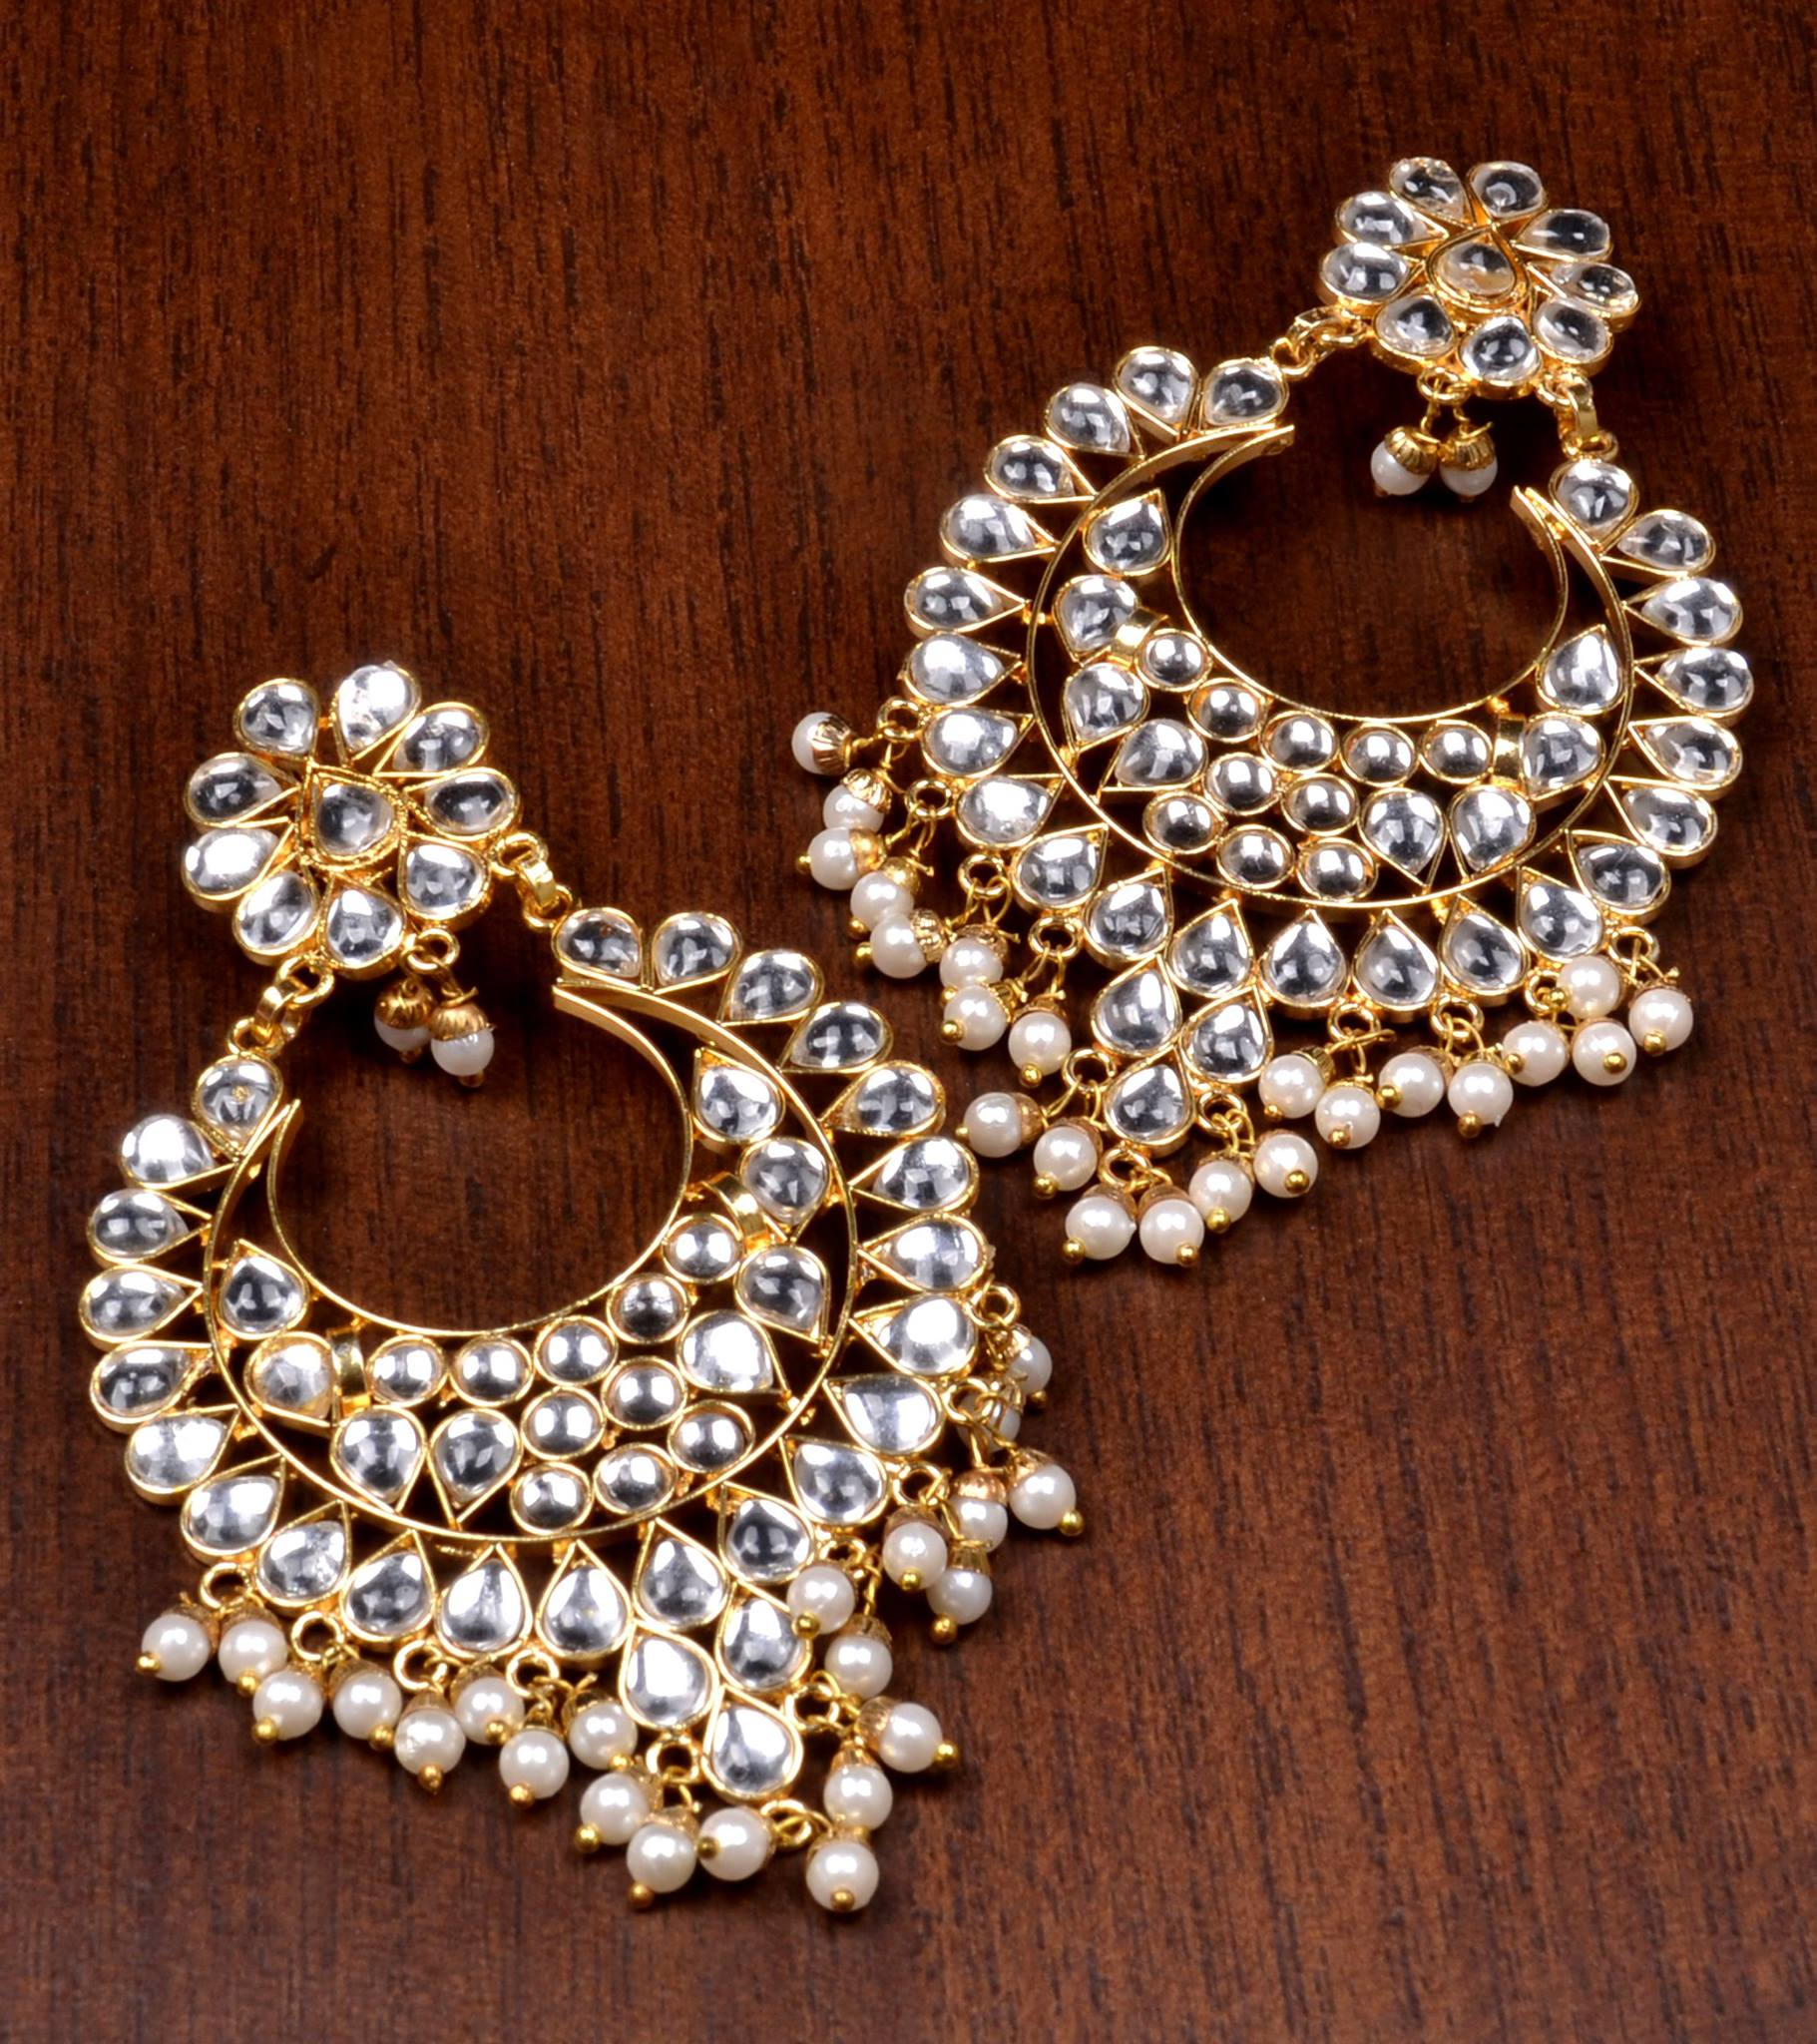 Earrings for Women – Buy Designer Earrings for Girls line at Low